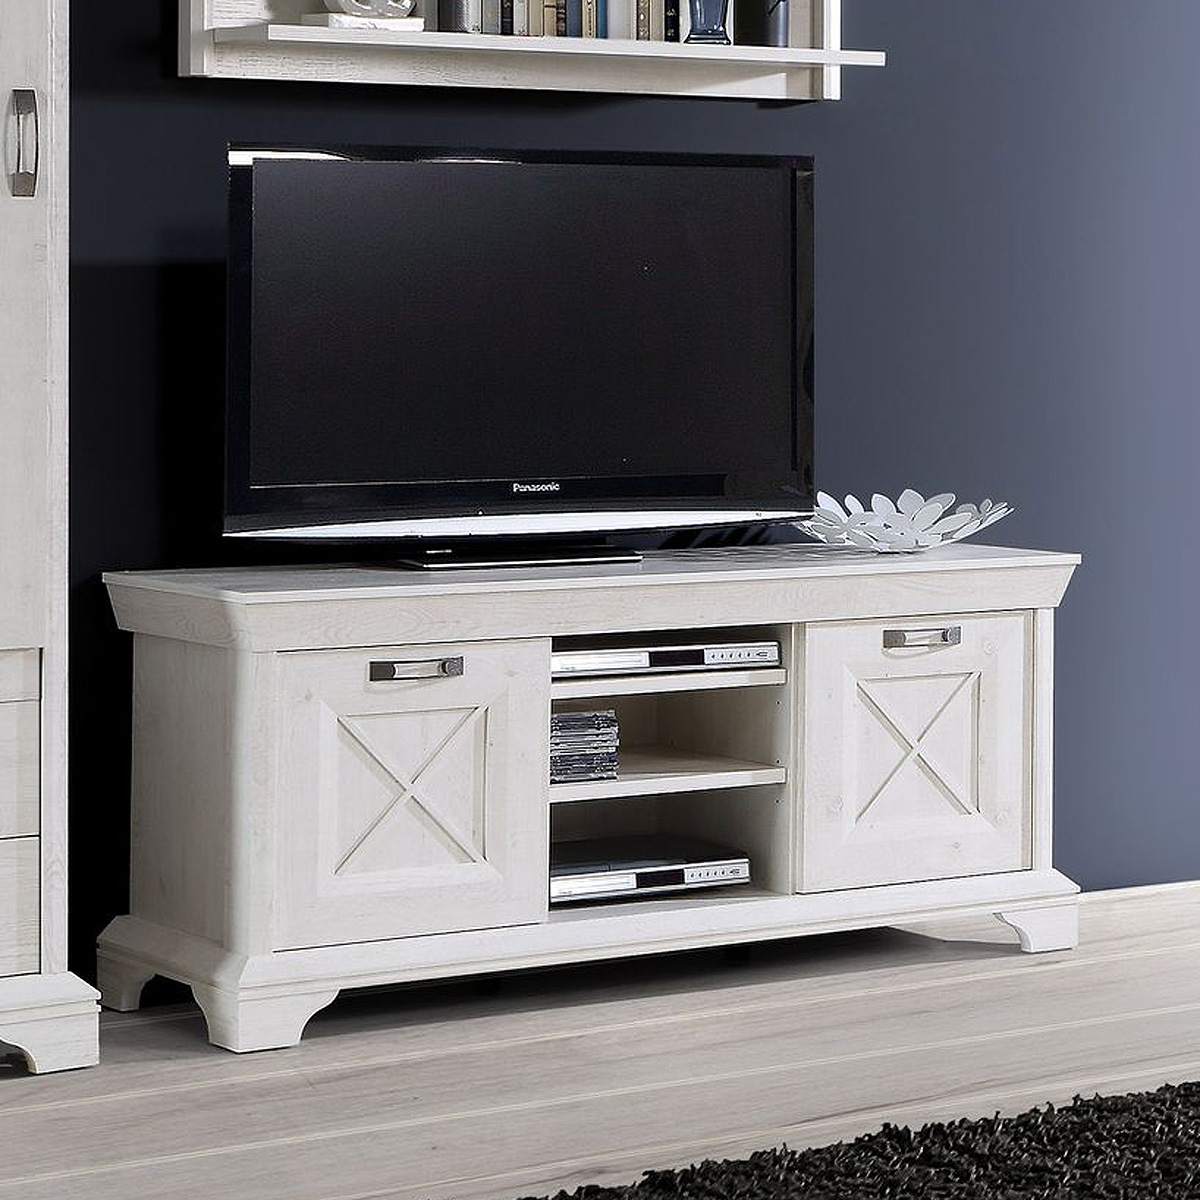 tv board 2 kashmir lowboard tv unterschrank fernsehschrank. Black Bedroom Furniture Sets. Home Design Ideas